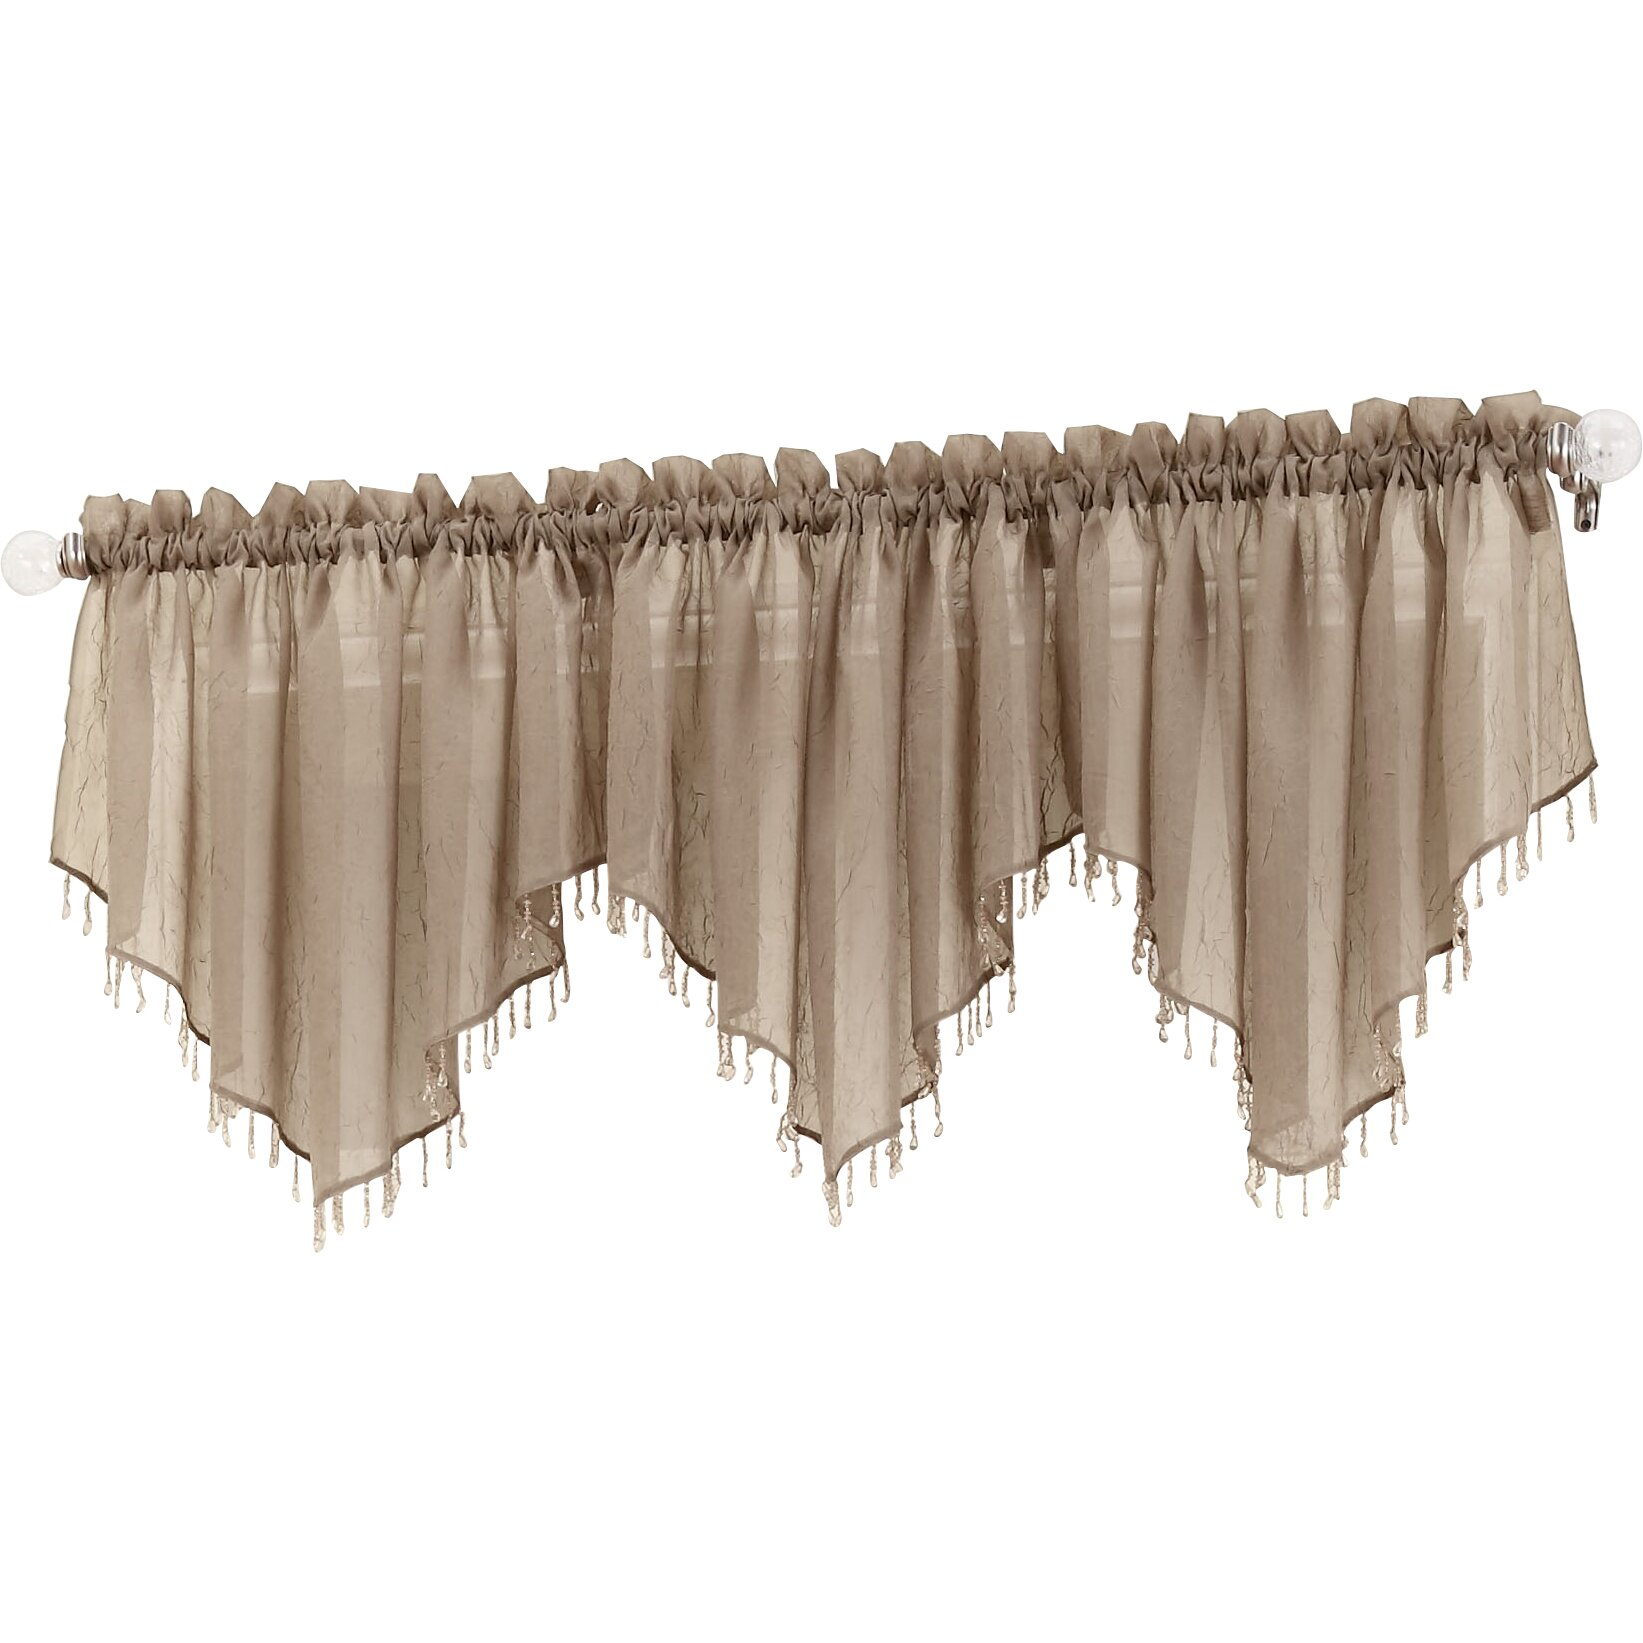 No 918 Erica Crushed Sheer Voile Beaded Curtain Valance Amp Reviews Wayfair